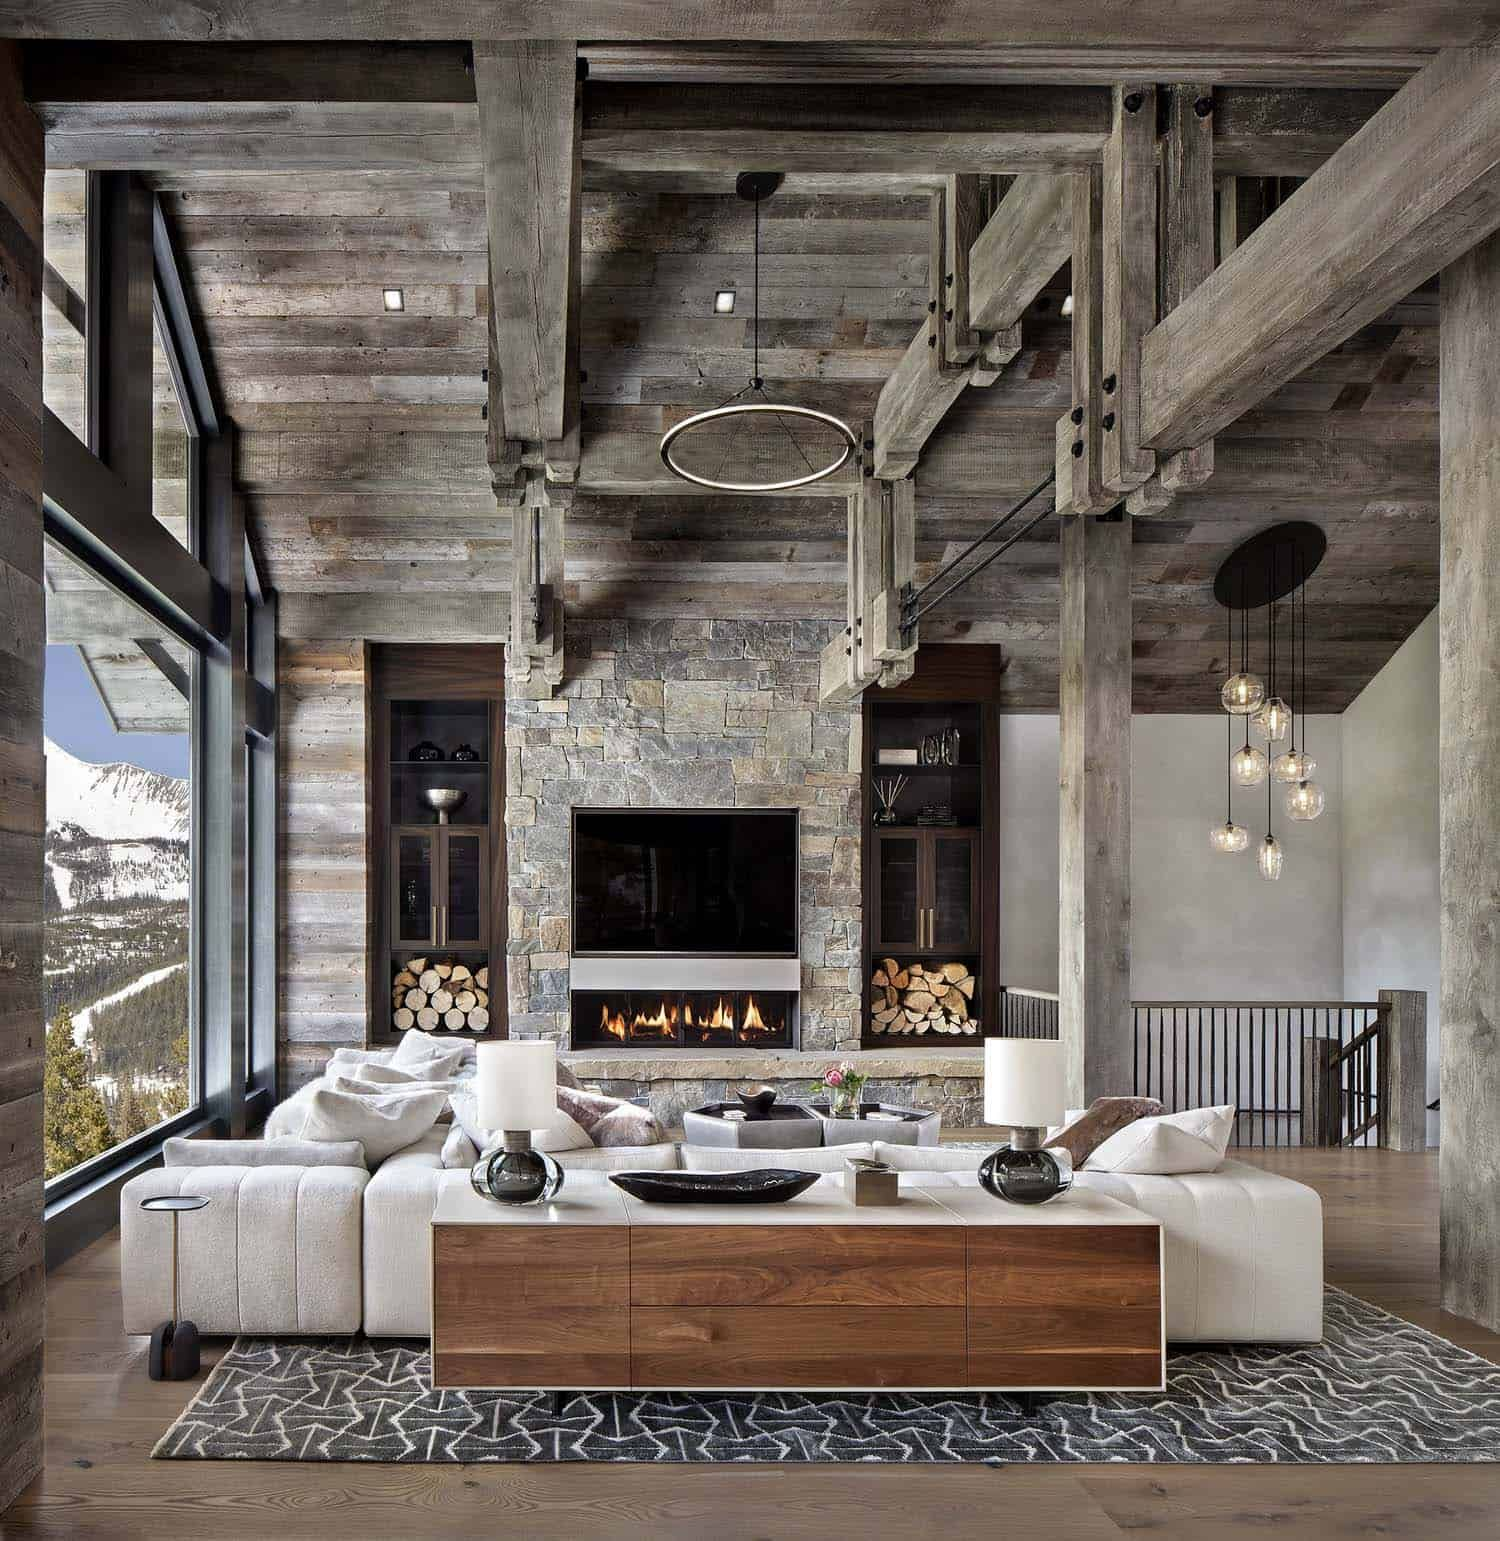 Modern-rustic Home Set Amidst The Grandeur Of The Rocky